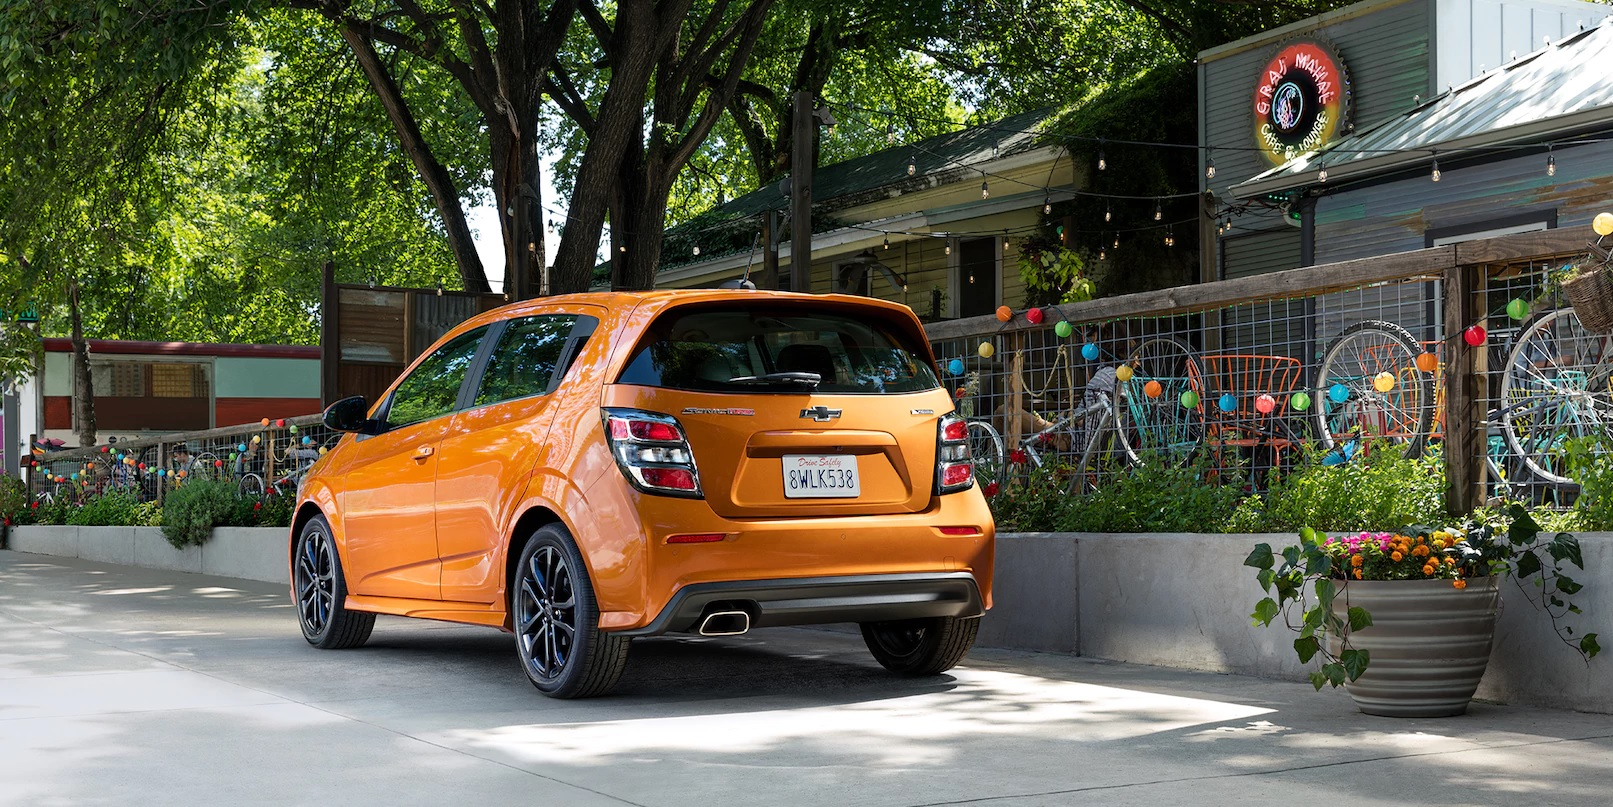 2018 Chevrolet Sonic for Sale in Chicago, IL